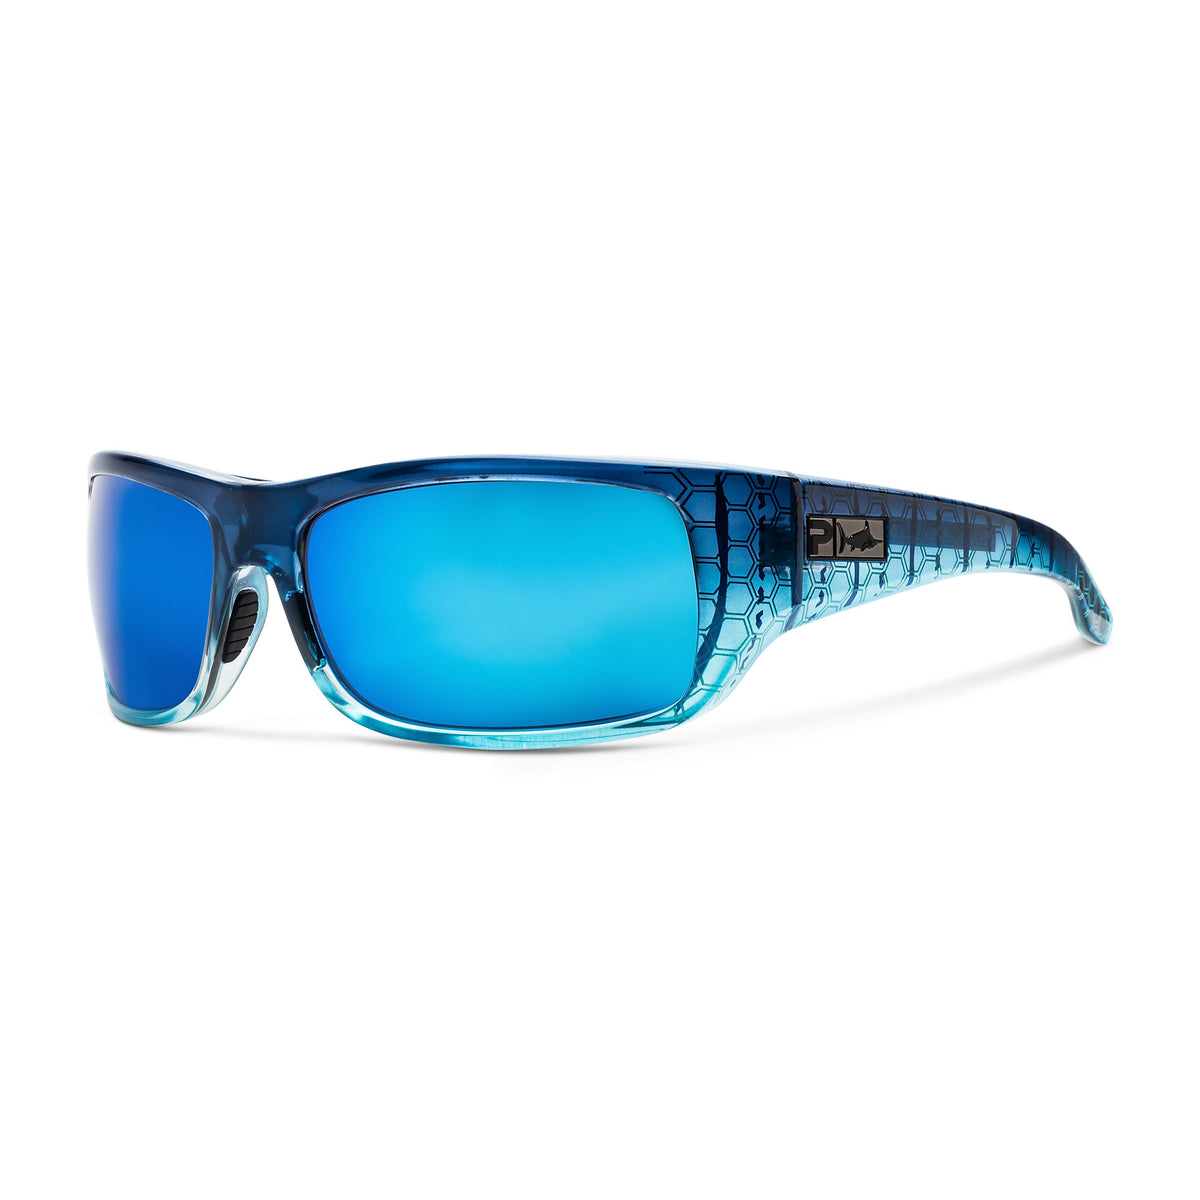 Fish Hook LTD - Polarized Mineral Glass™ Big Image - 4